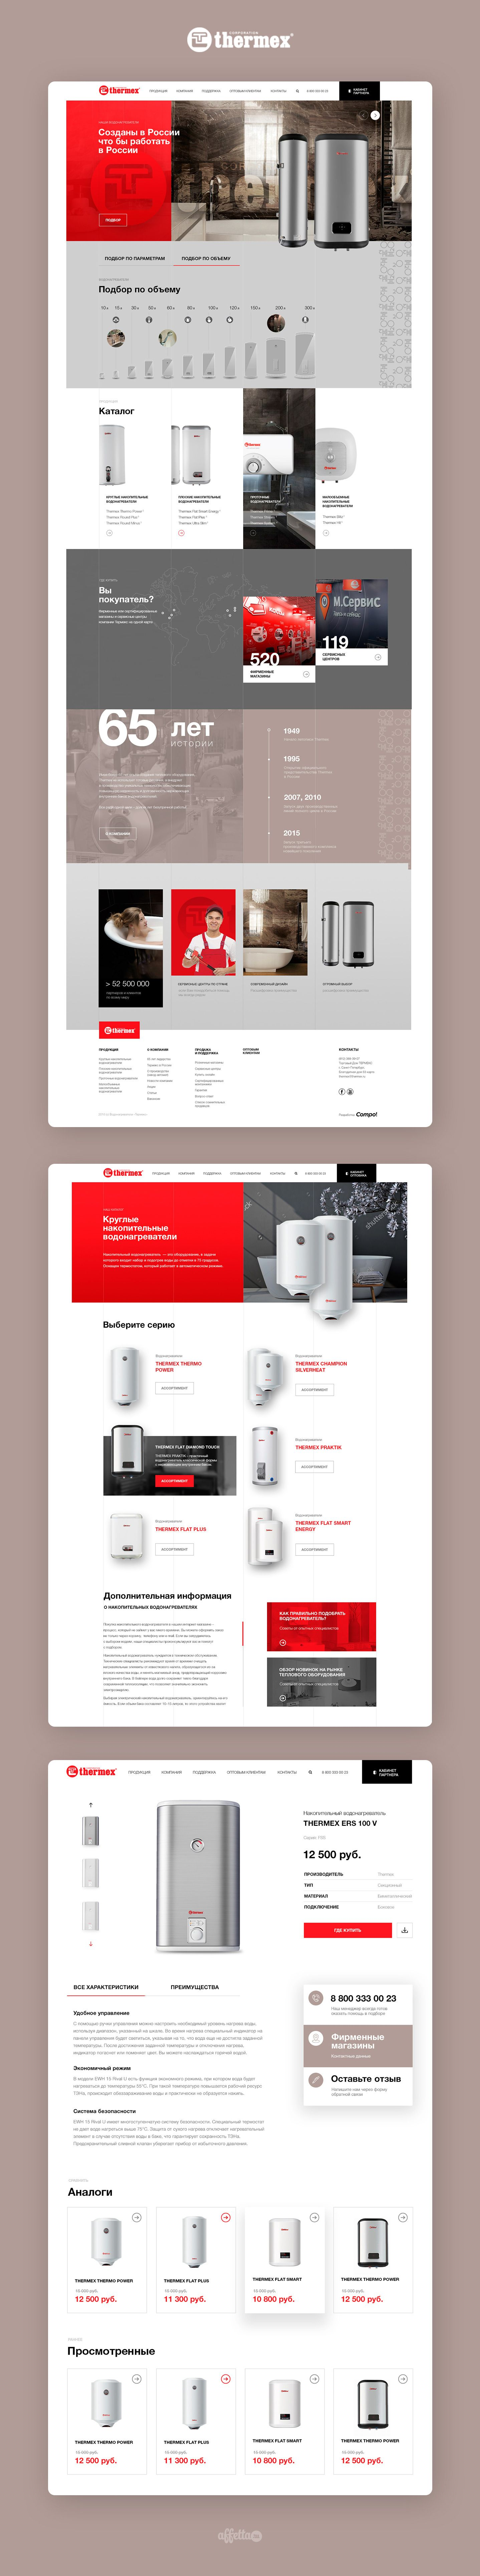 THERMEX e-commerce on Behance | web design | Pinterest | Behance, Ui ...